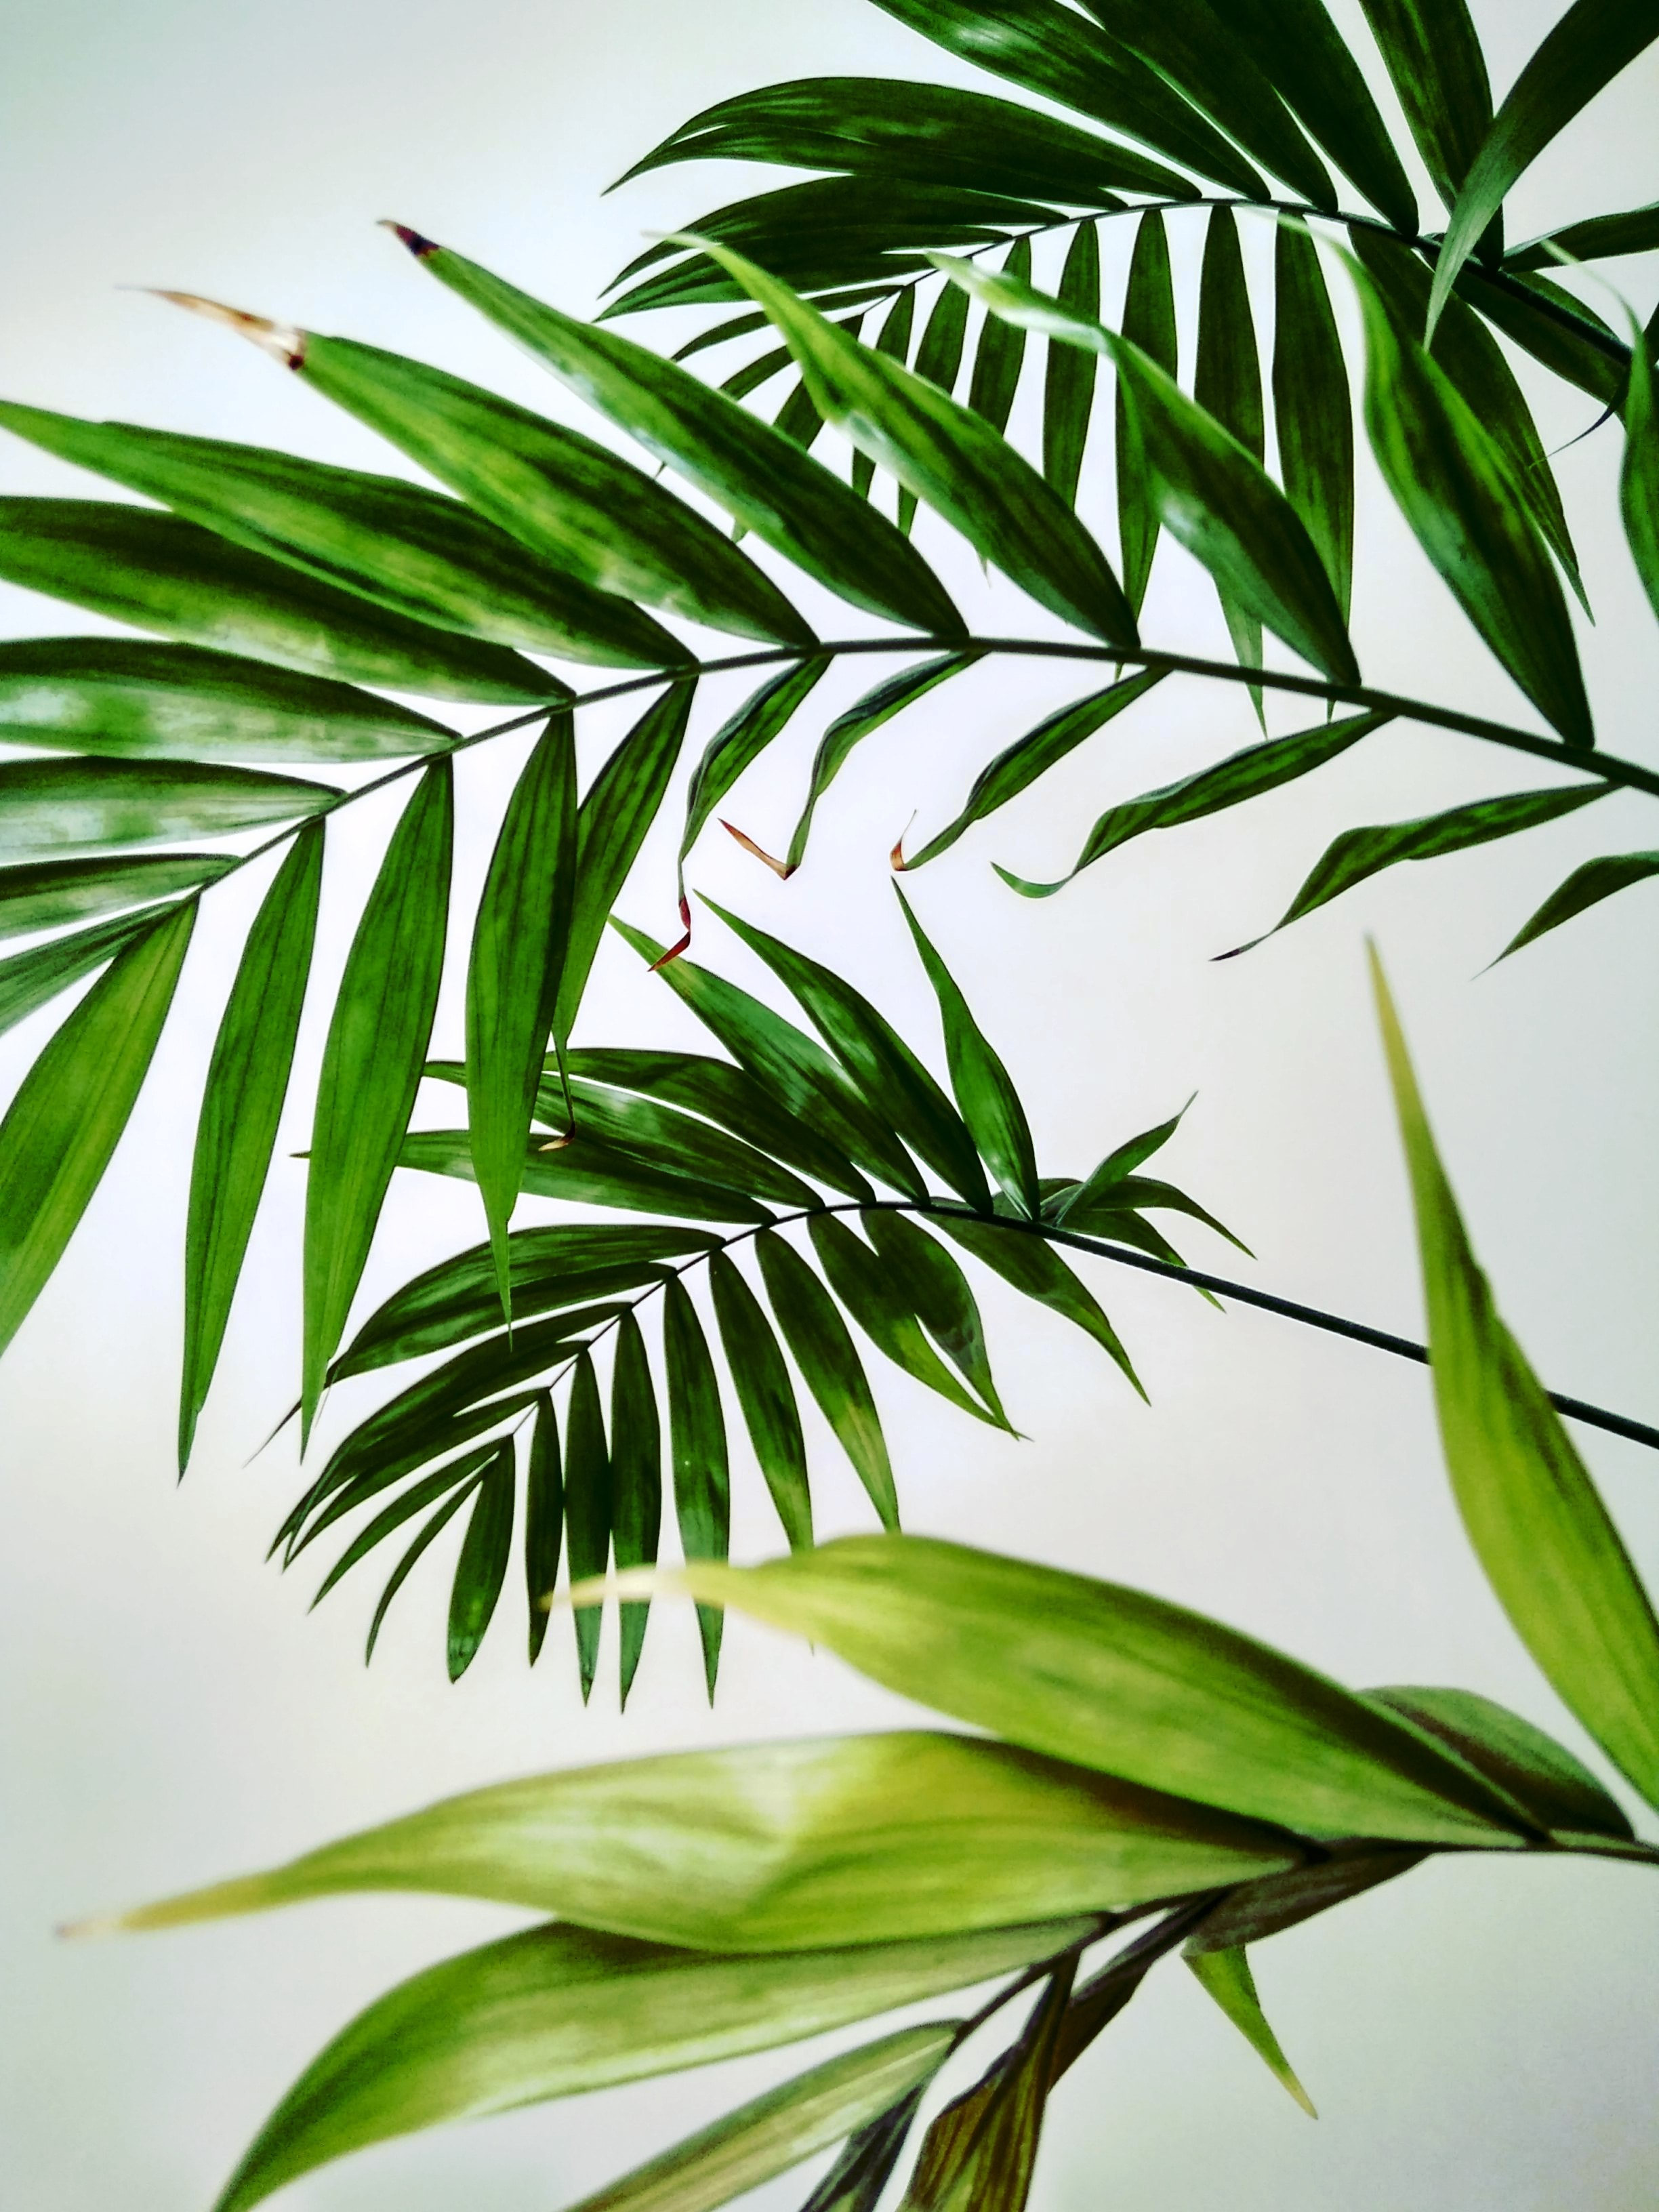 close-up photo of fan palm plant